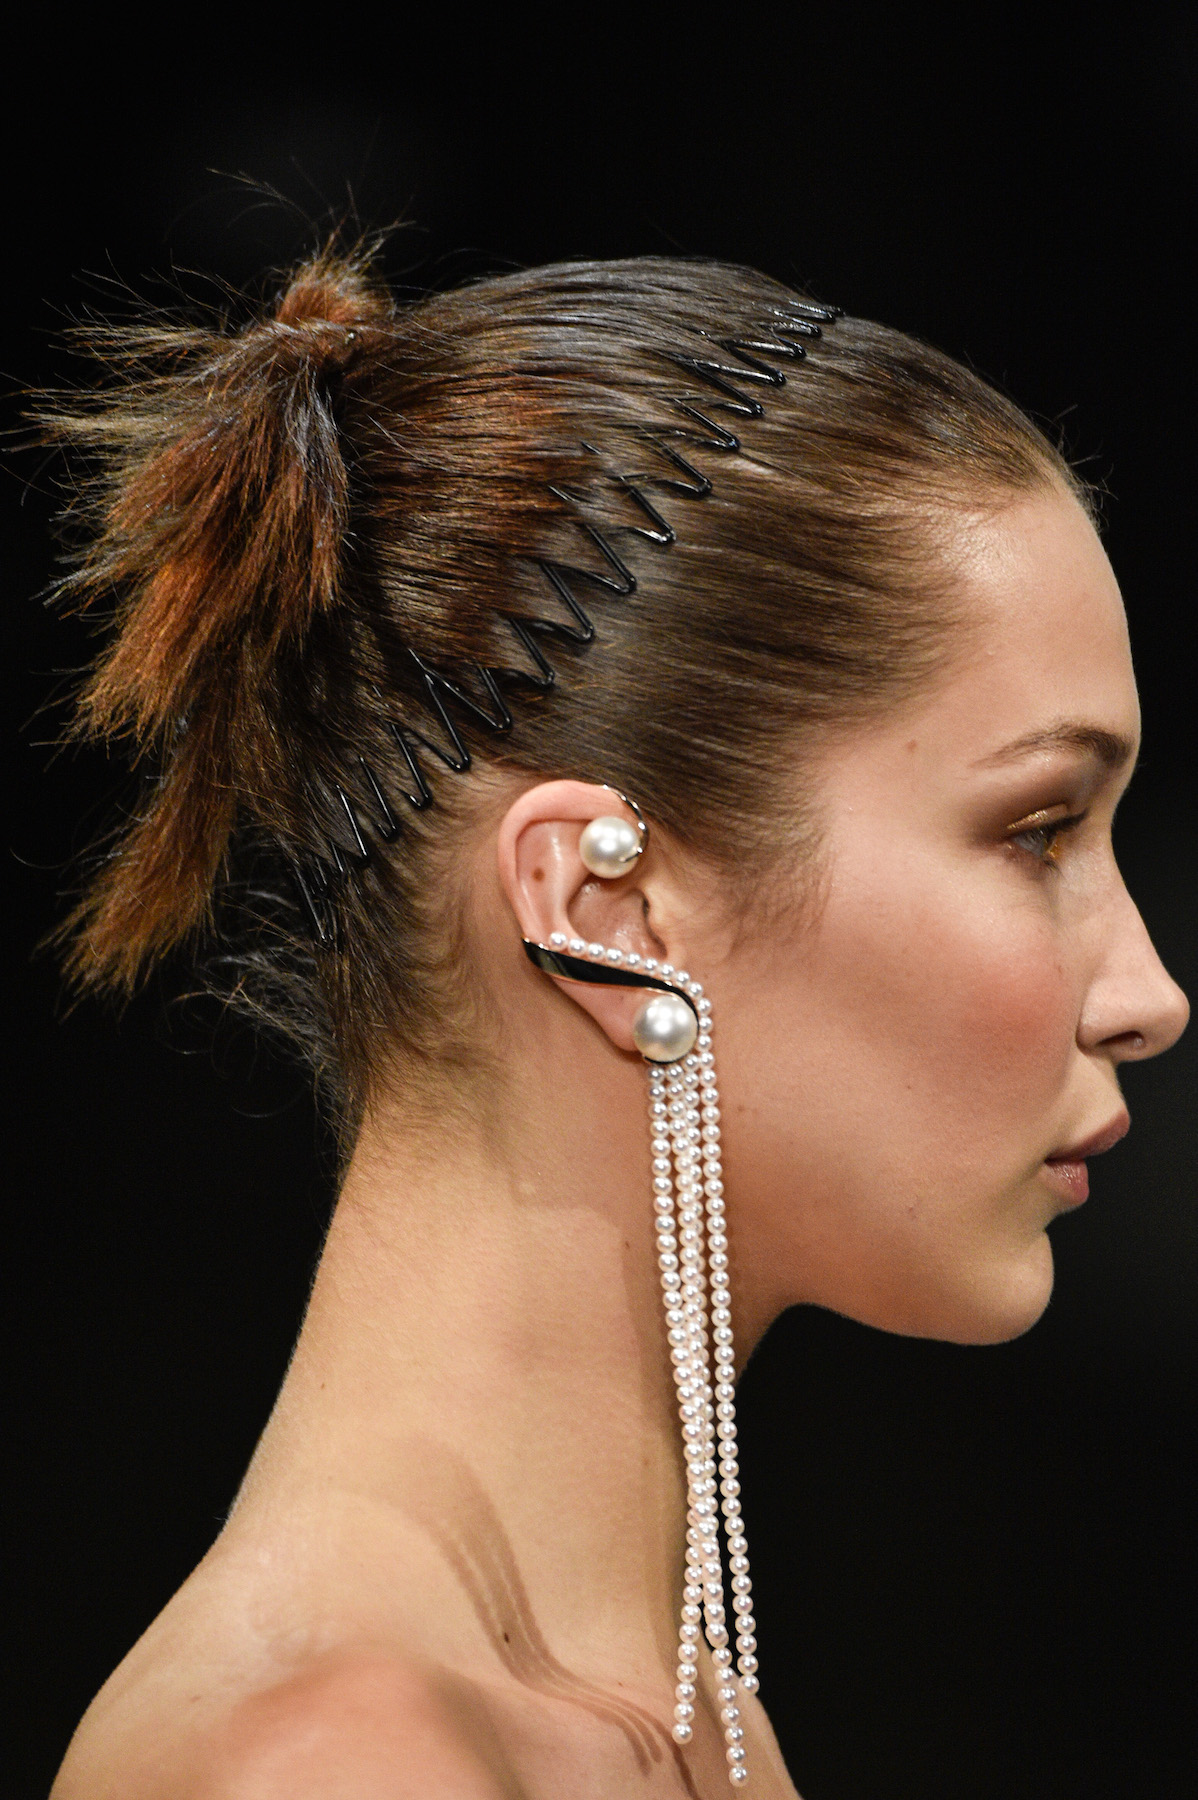 Model at a Prabal Gurung show wearing stretch comb in hair